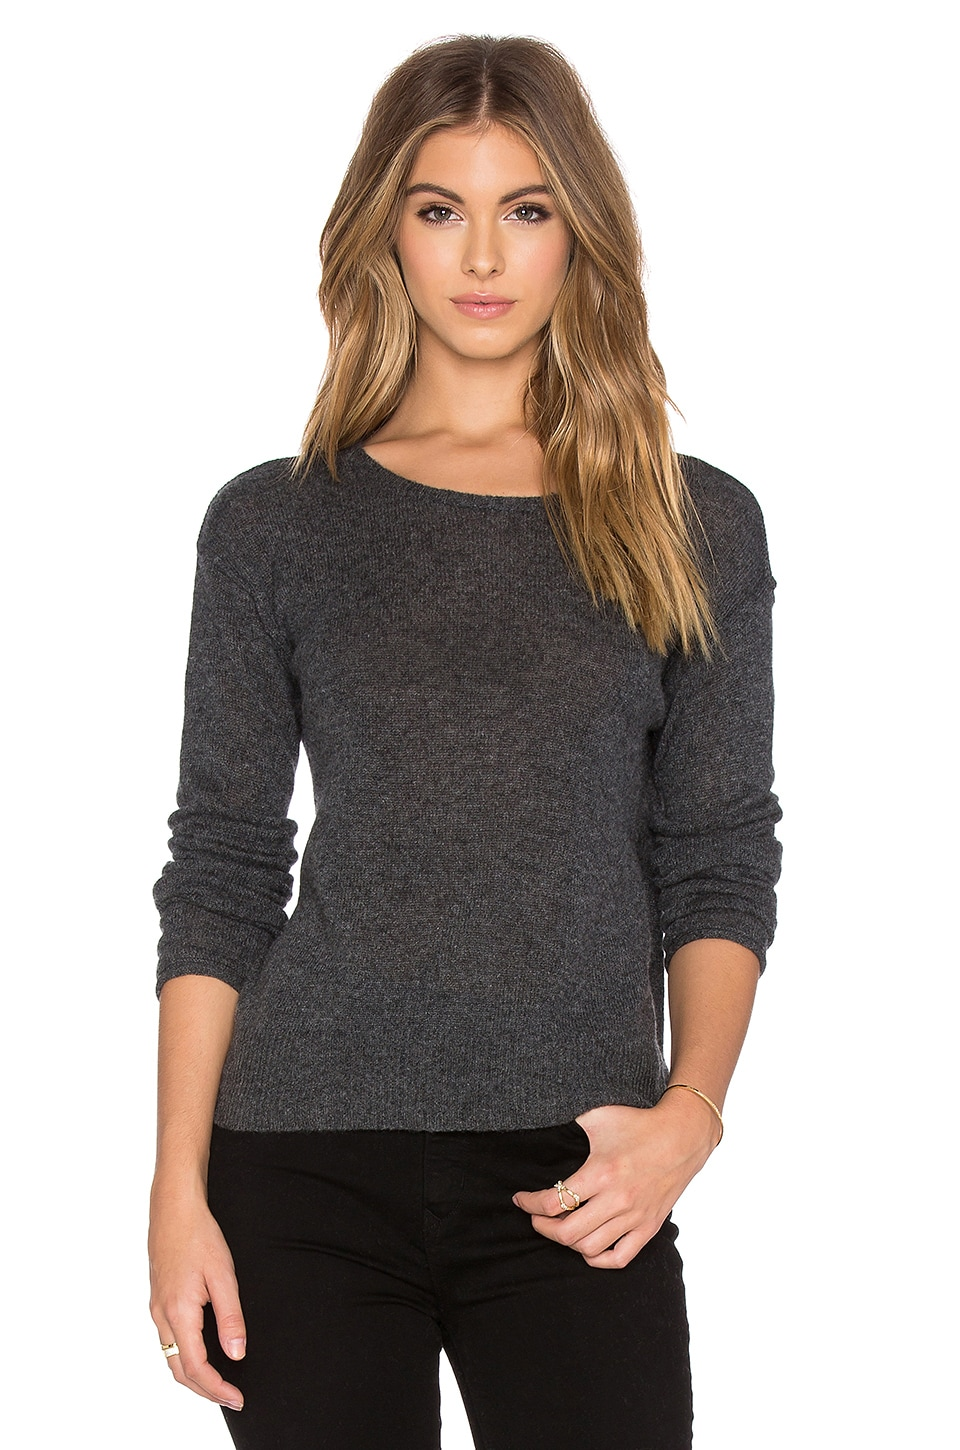 James Perse Cashmere Loose Gauze Sweater in Charcoal